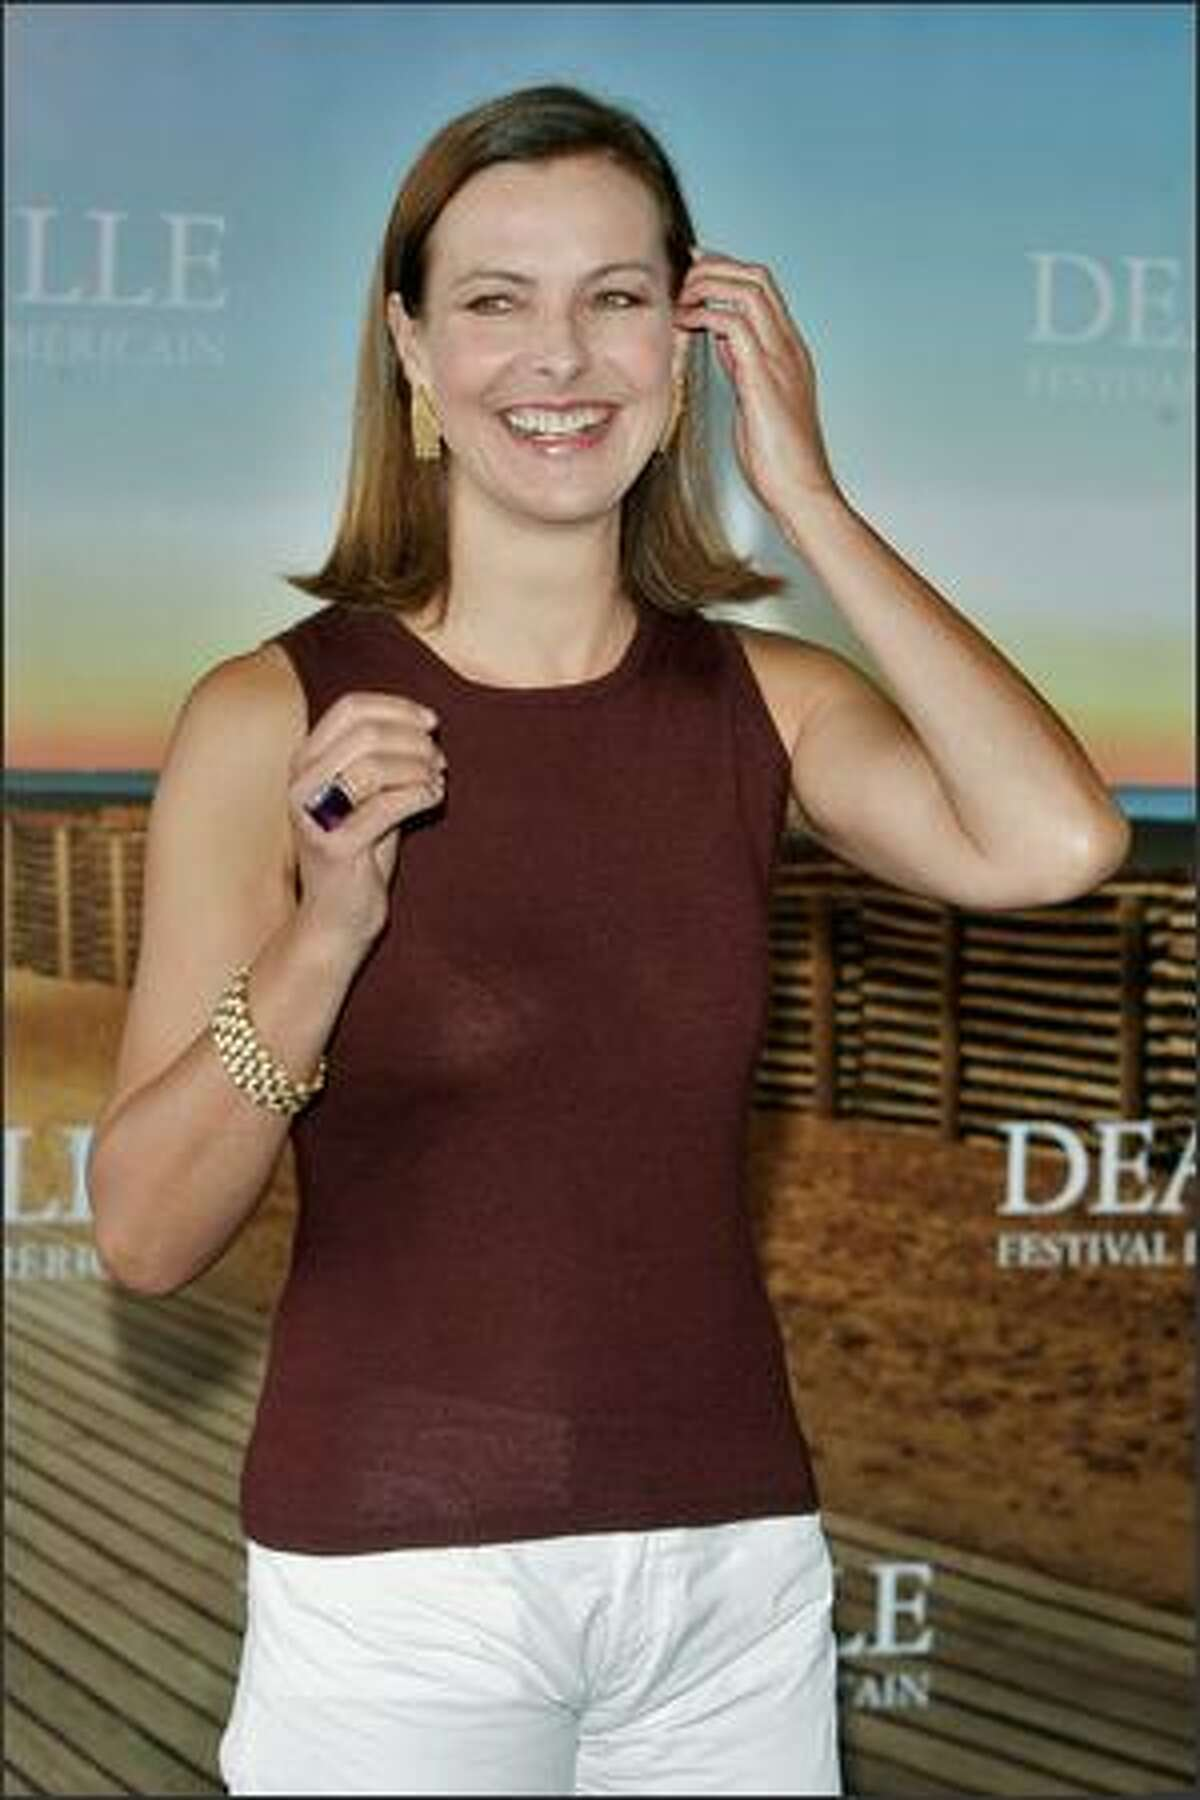 Head of the jury, French actress Carole Bouquet arrives at a jury photocall during the 34th Deauville Film Festival on Monday in Deauville, France.